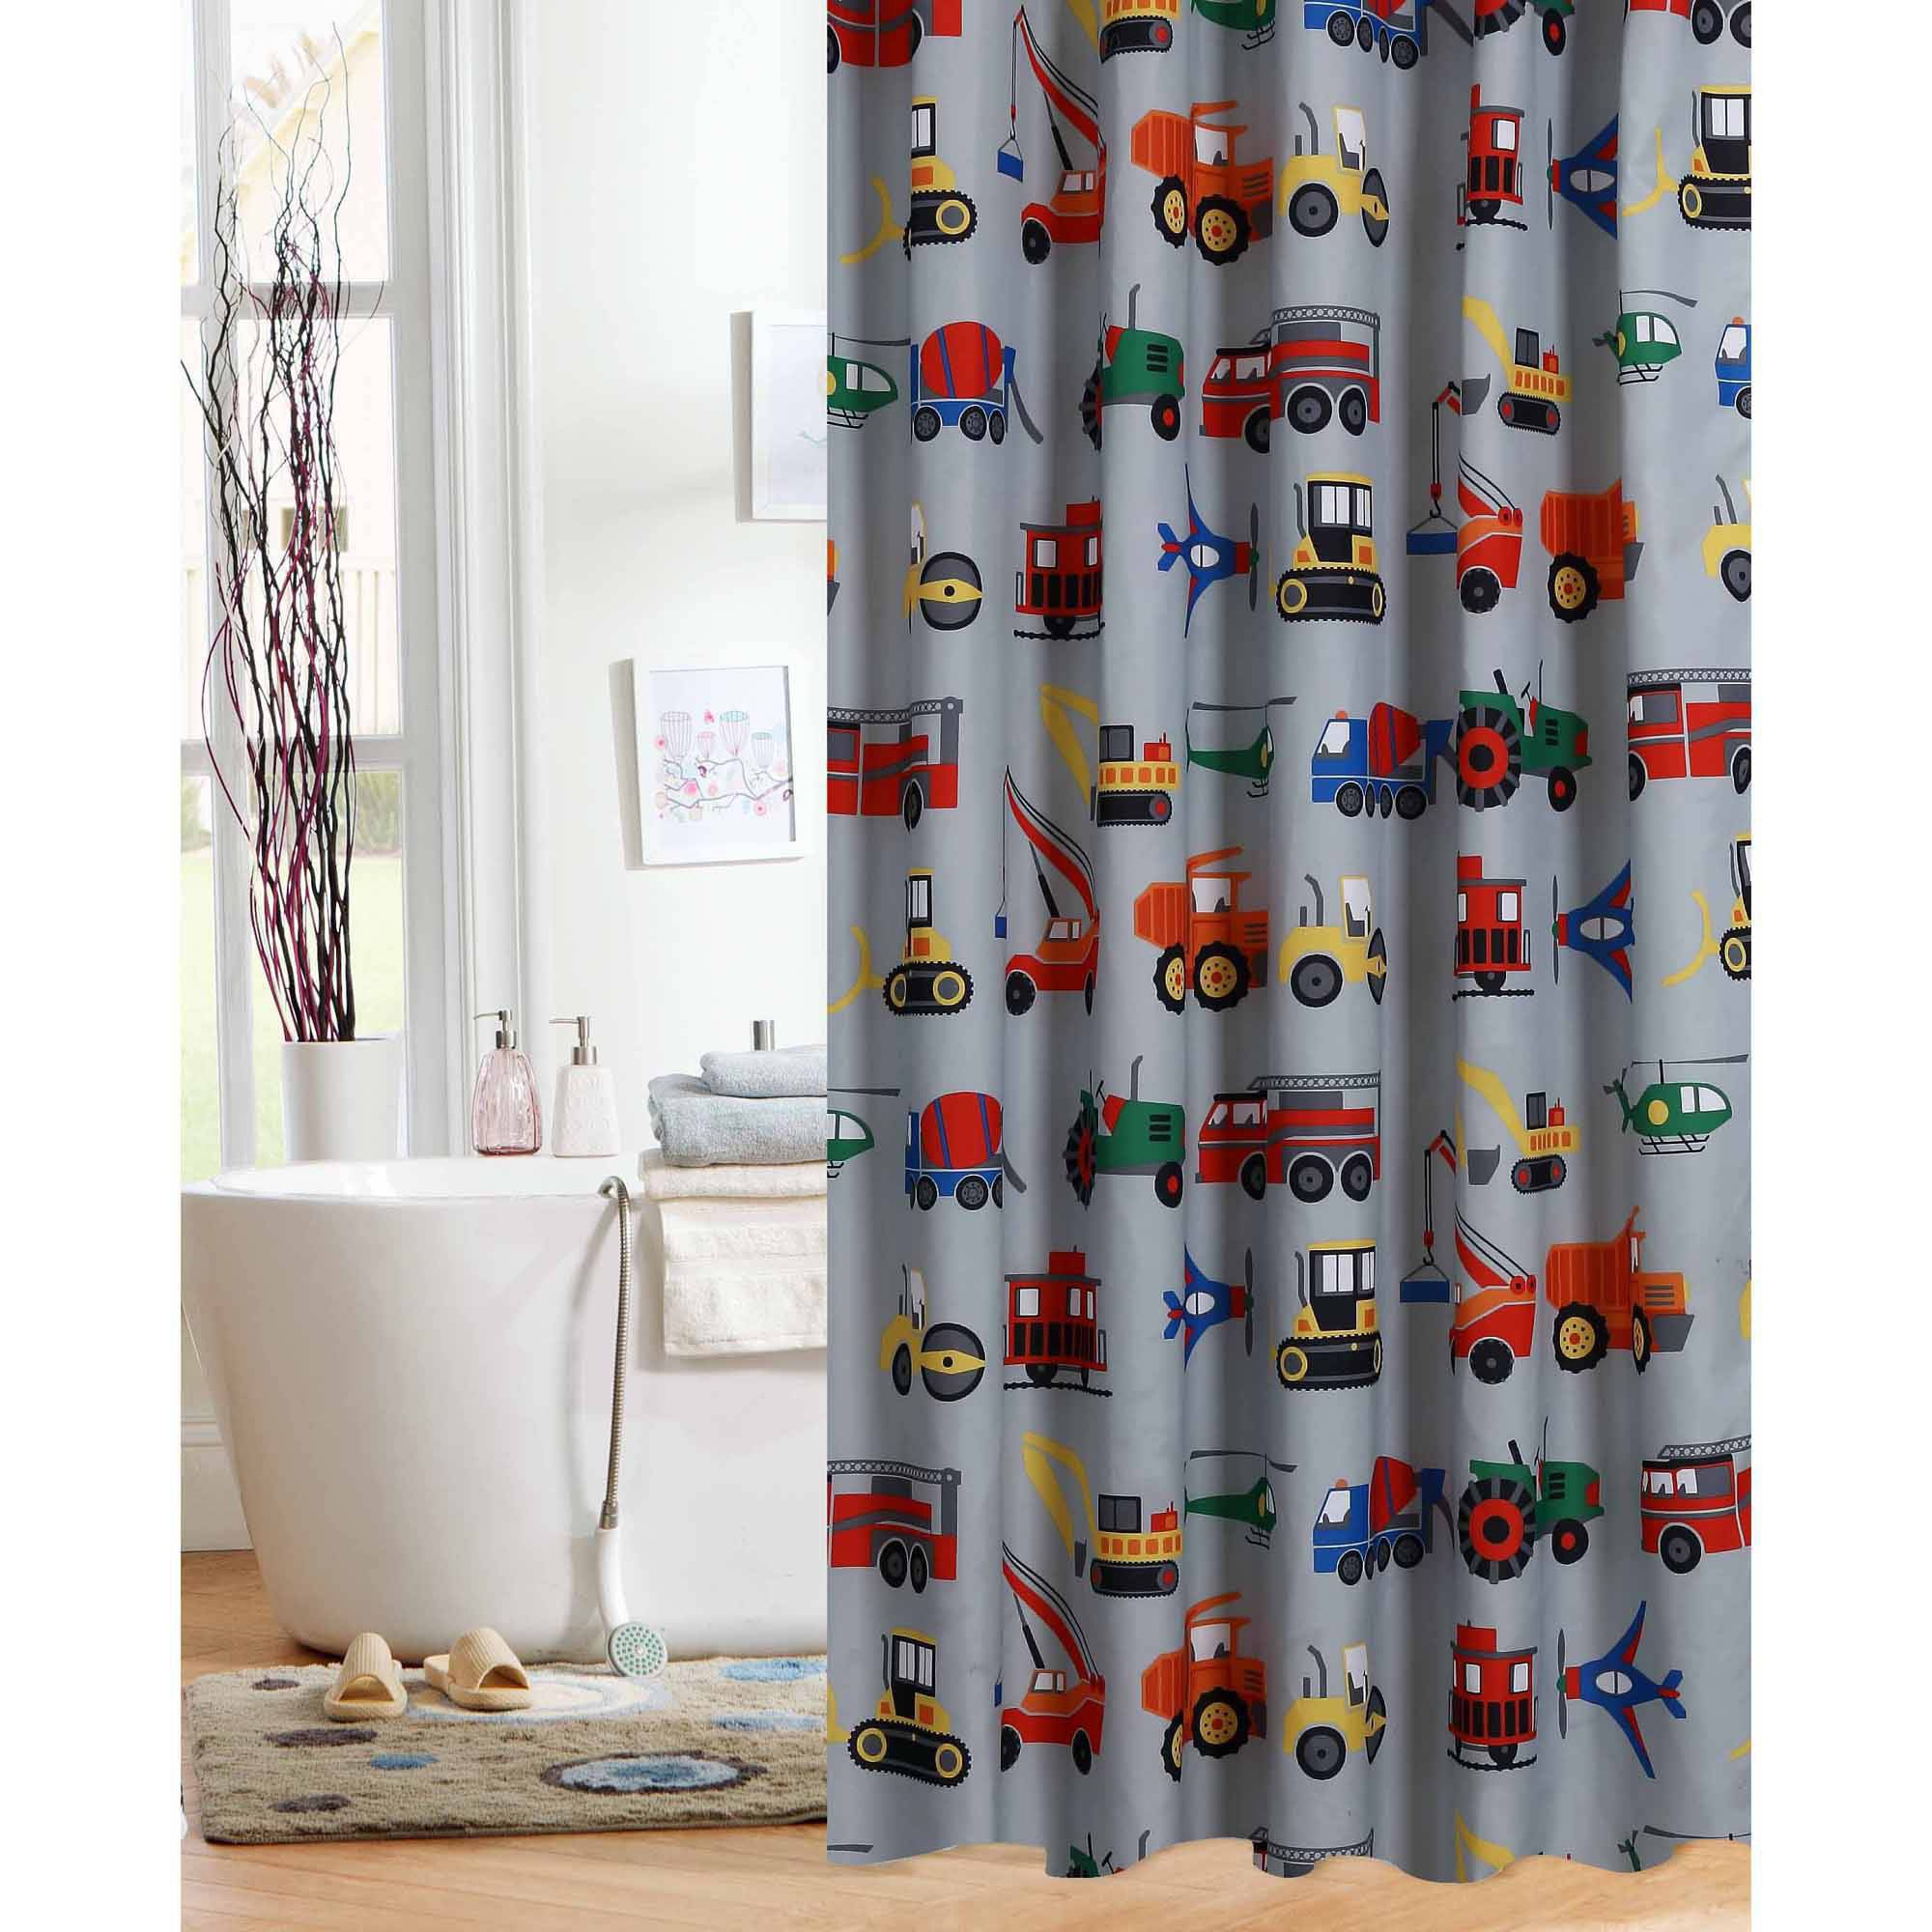 Bathroom Wonderful Christmas Shower Curtains And Towels regarding measurements 2000 X 2000